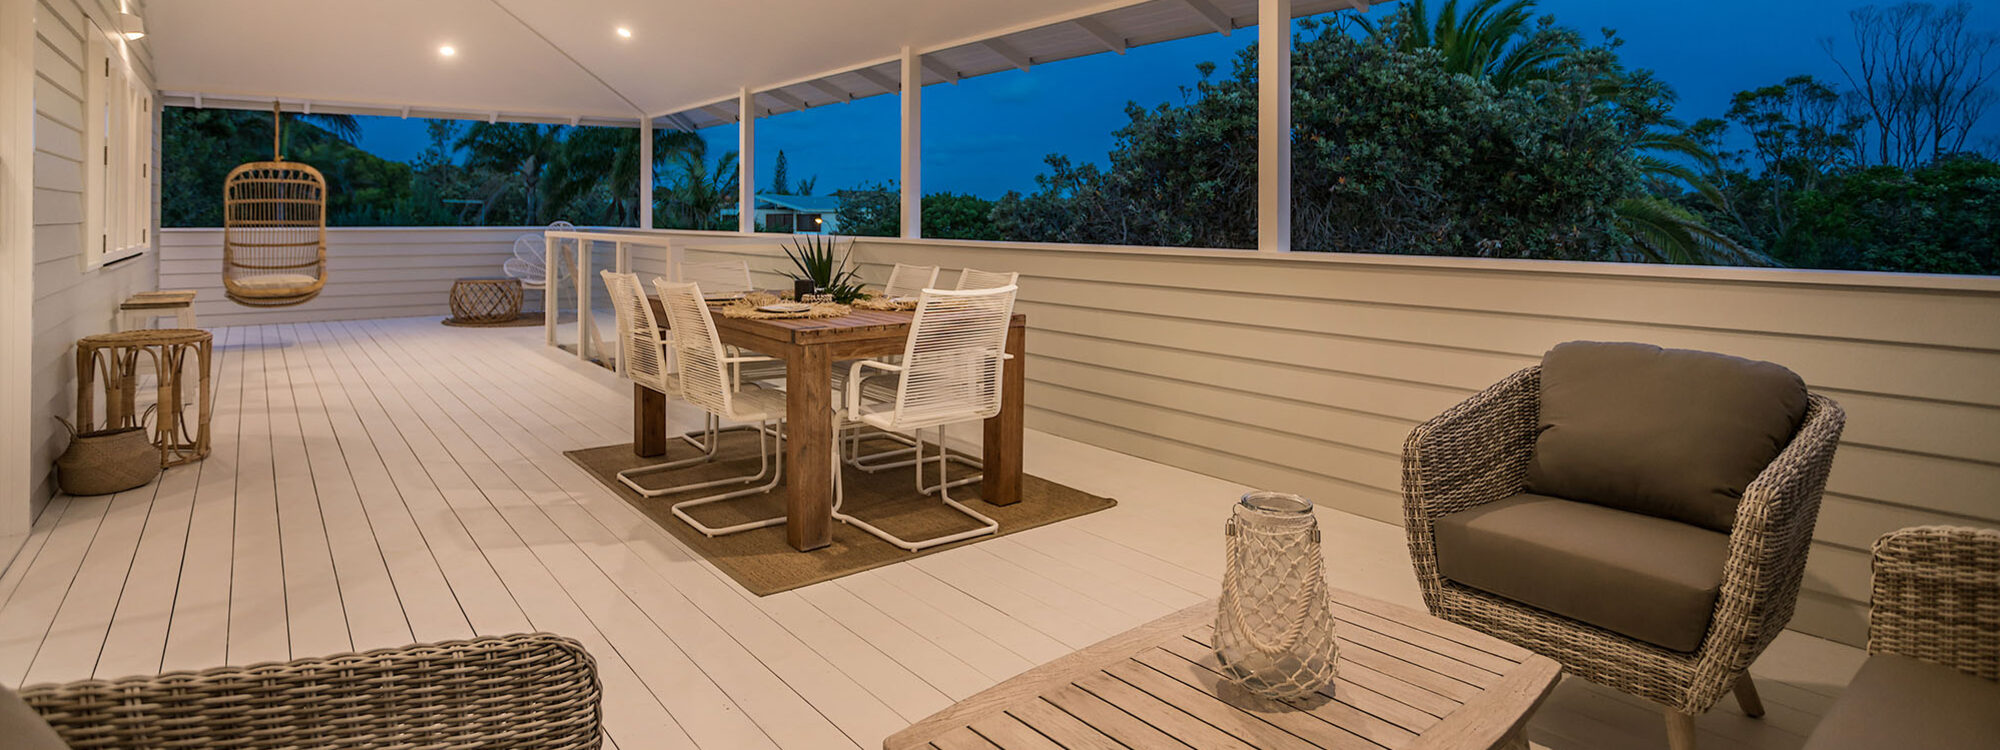 Castaway on Tallows - Byron Bay - Evening View of Upstairs Balcony Dining and Seating Area b